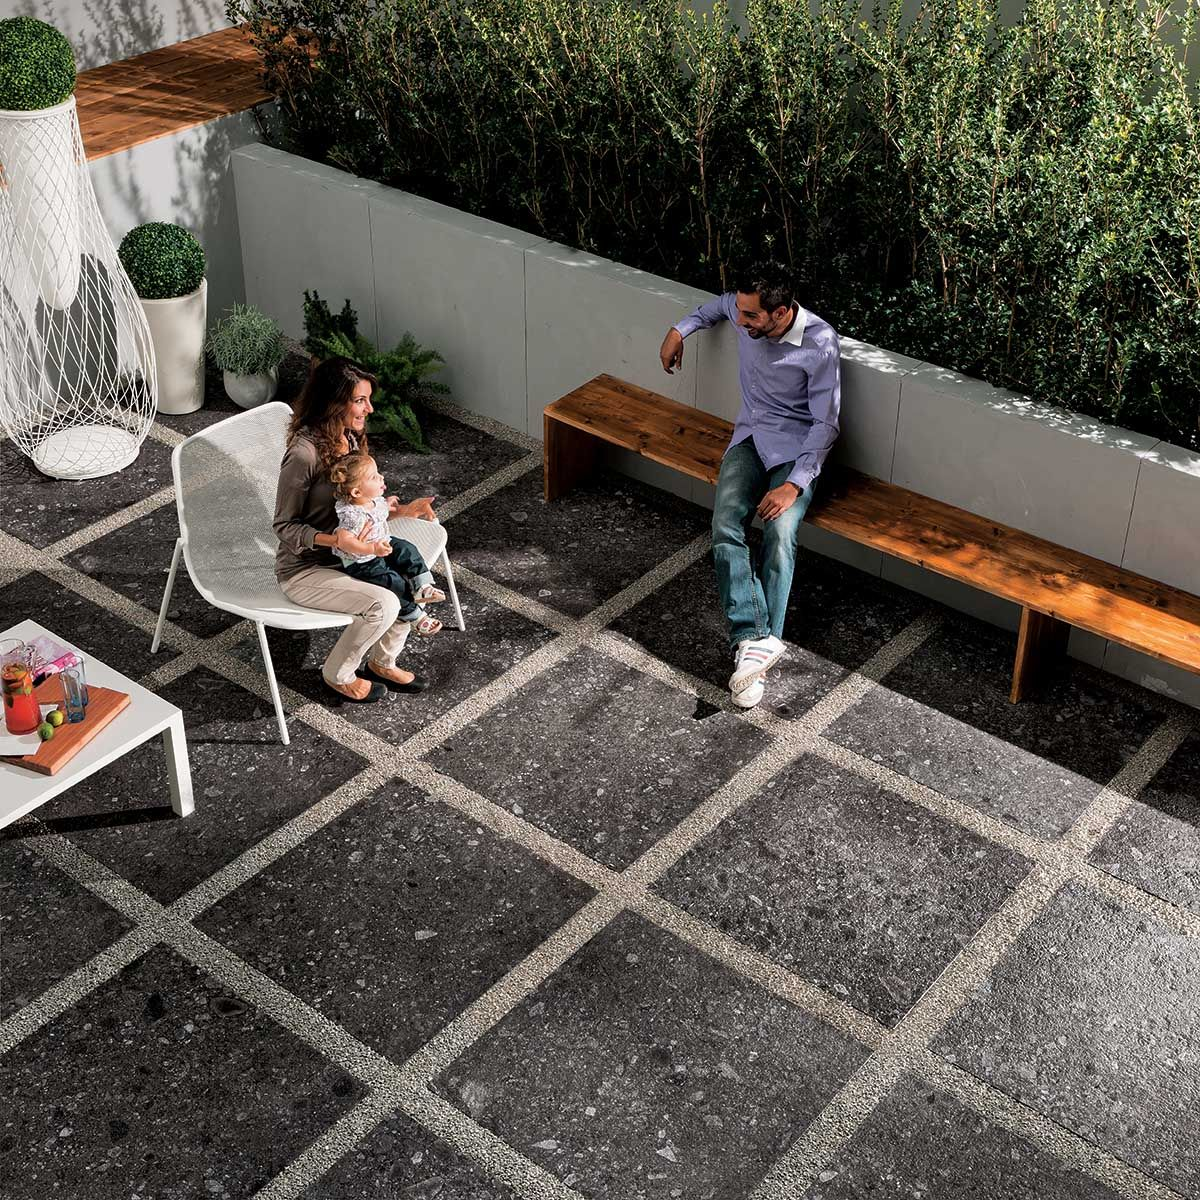 Ecco Mineral Stone 2 0 Outdoor Tiles Patio Pictures Exterior Tiles